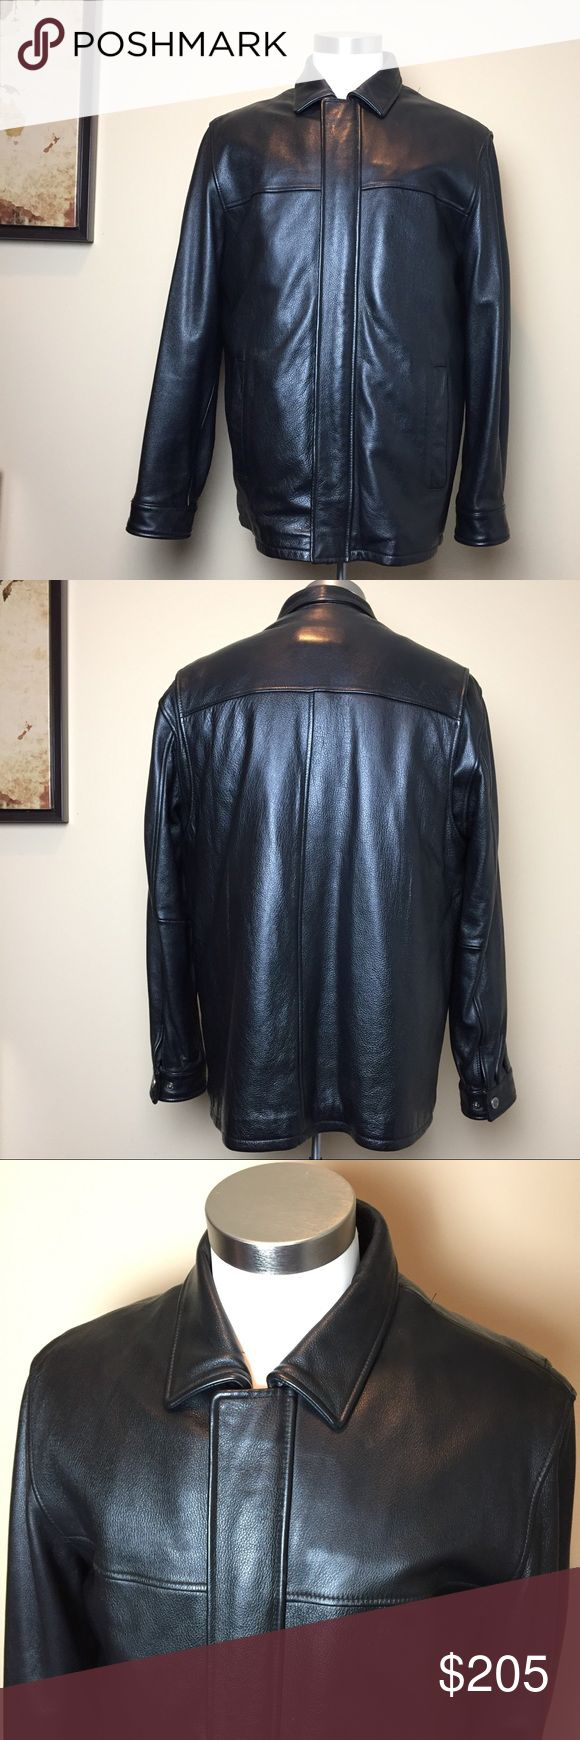 SOLD Wilson's Leather Motorcycle Jacket Thinsulate